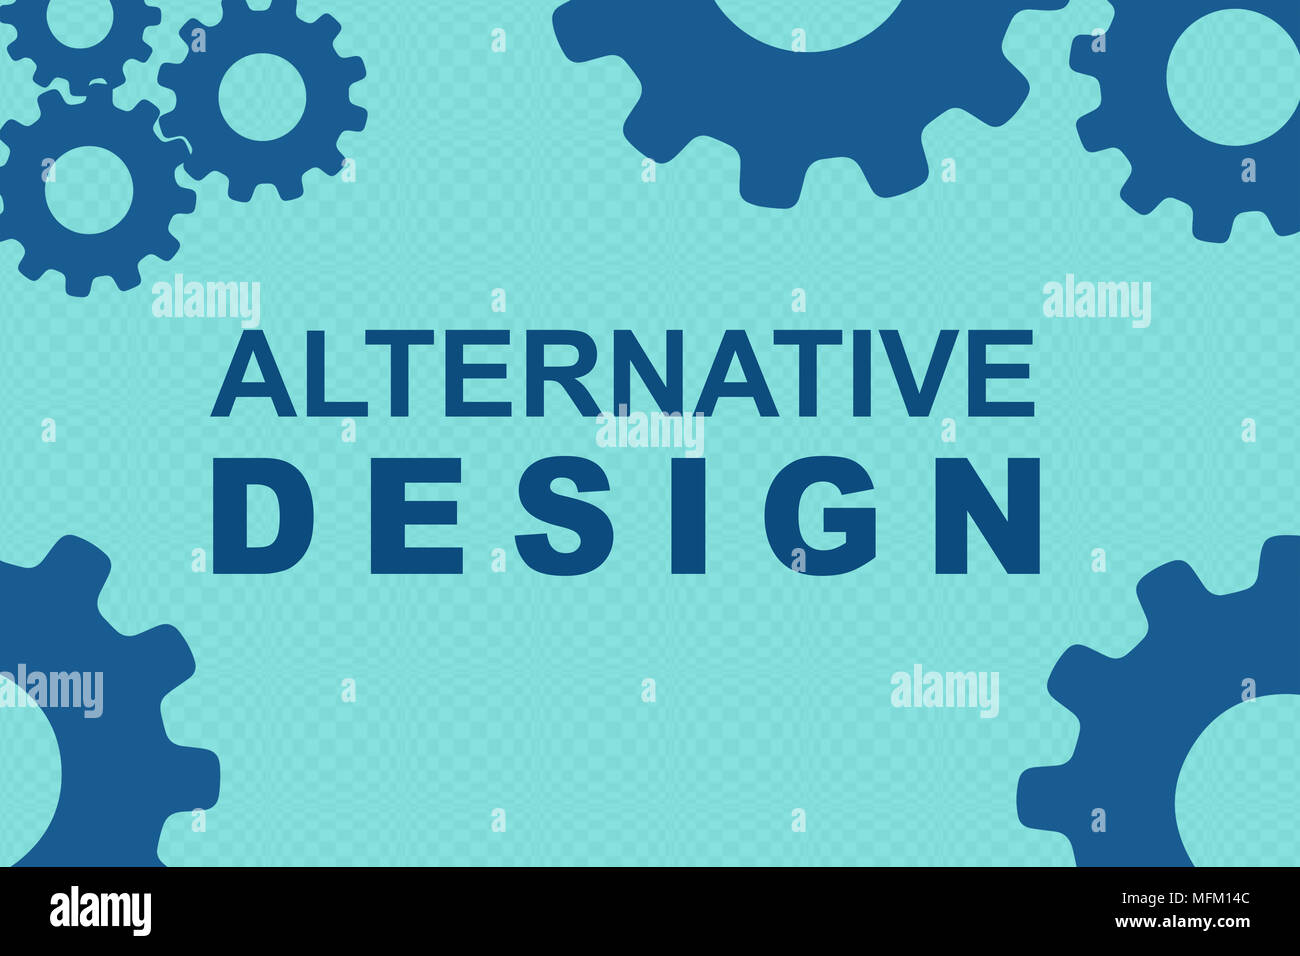 ALTERNATIVE DESIGN Sign Concept Illustration With Blue Gear Wheel Figures On Pale Background